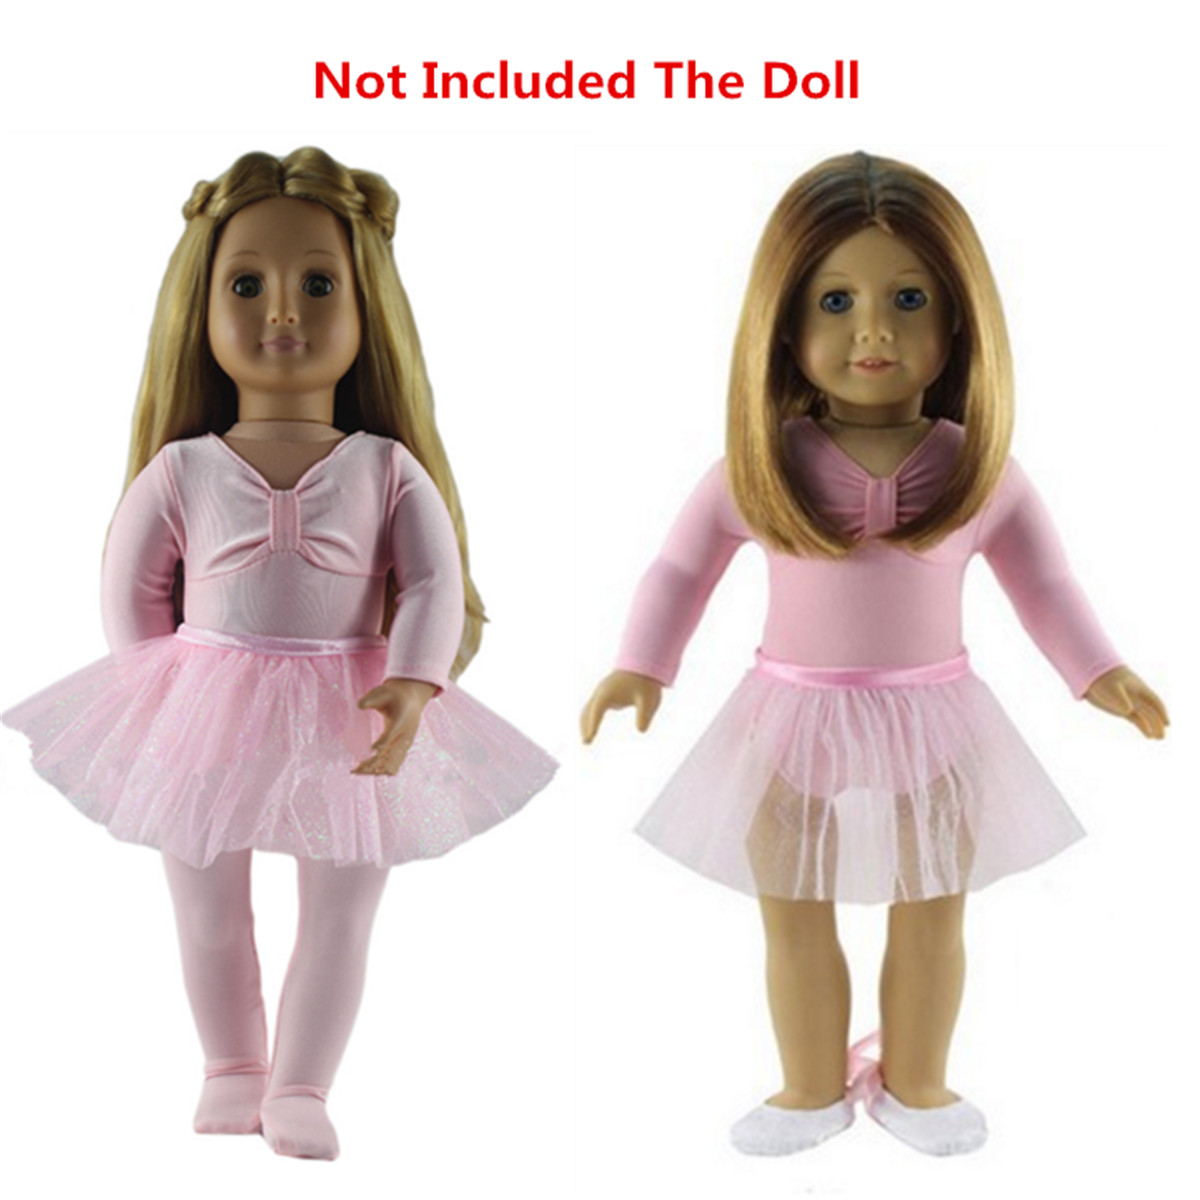 9b7fe76f861d9 Details about Ballet Dance Outfit Clothes Set fit 18 Inch American Girl Our  Generation Doll